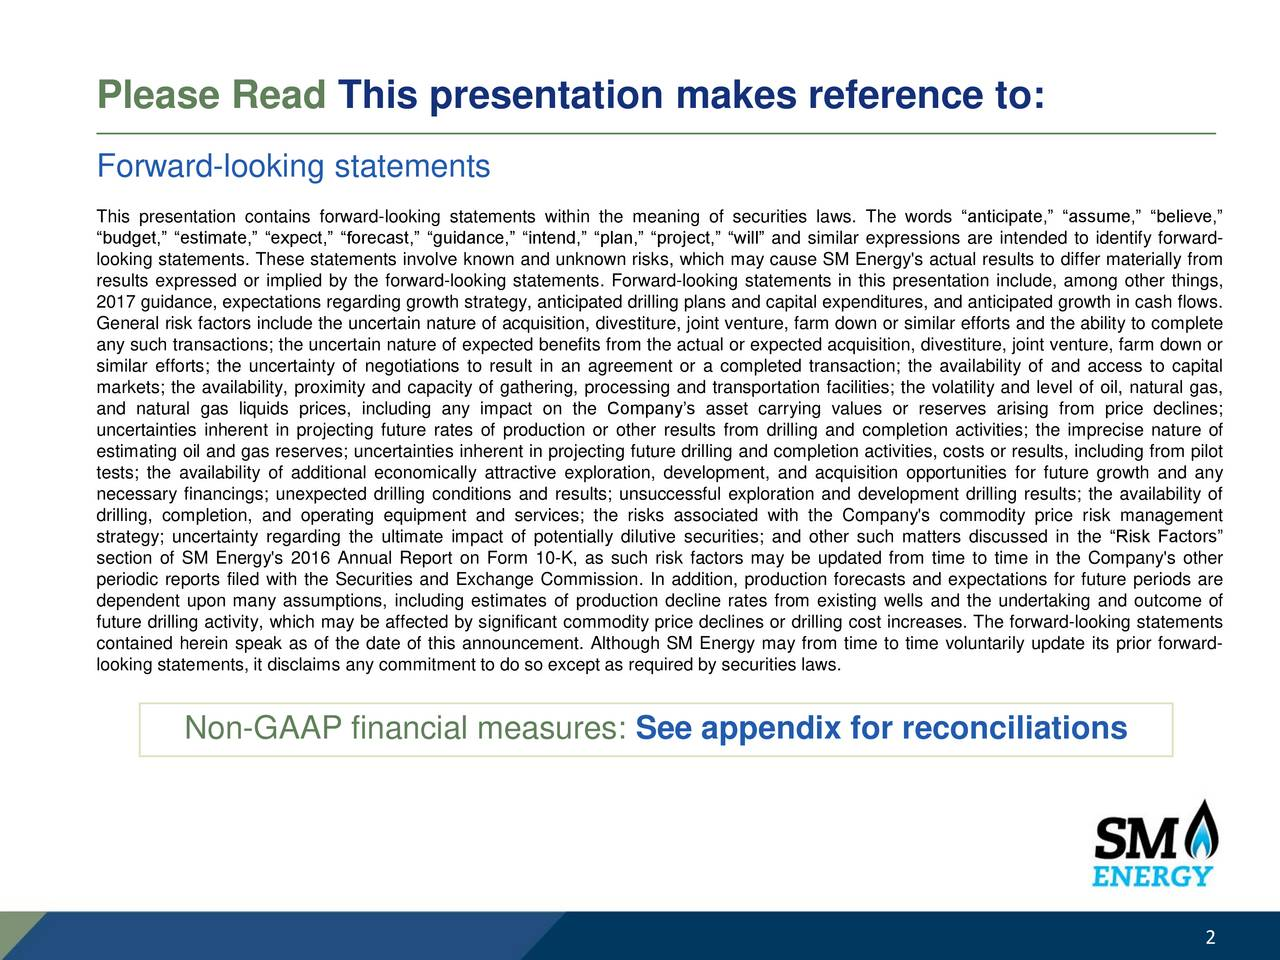 Forward-looking statements This presentation contains forward-looking statements within the meaning of securities laws. The words anticipate, assume, believe, budget, estimate, expect, forecast, guidance, intend, plan, project, will and similar expressions are intended to identify forward- looking statements. These statements involve known and unknown risks, which may cause SM Energy's actual results to differ materially from results expressed or implied by the forward-looking statements. Forward-looking statements in this presentation include, among other things, 2017 guidance, expectations regarding growth strategy, anticipated drilling plans and capital expenditures, and anticipated growth in cash flows. General risk factors include the uncertain nature of acquisition, divestiture, joint venture, farm down or similar efforts and the ability to complete any such transactions; the uncertain nature of expected benefits from the actual or expected acquisition, divestiture, joint venture, farm down or similar efforts; the uncertainty of negotiations to result in an agreement or a completed transaction; the availability of and access to capital markets; the availability, proximity and capacity of gathering, processing and transportation facilities; the volatility and level of oil, natural gas, and natural gas liquids prices, including any impact on the Companys asset carrying values or reserves arising from price declines; uncertainties inherent in projecting future rates of production or other results from drilling and completion activities; the imprecise nature of estimating oil and gas reserves; uncertainties inherent in projecting future drilling and completion activities, costs or results, including from pilot tests; the availability of additional economically attractive exploration, development, and acquisition opportunities for future growth and any necessary financings; unexpected drilling conditions and results; unsuccessful exploration and development drillin